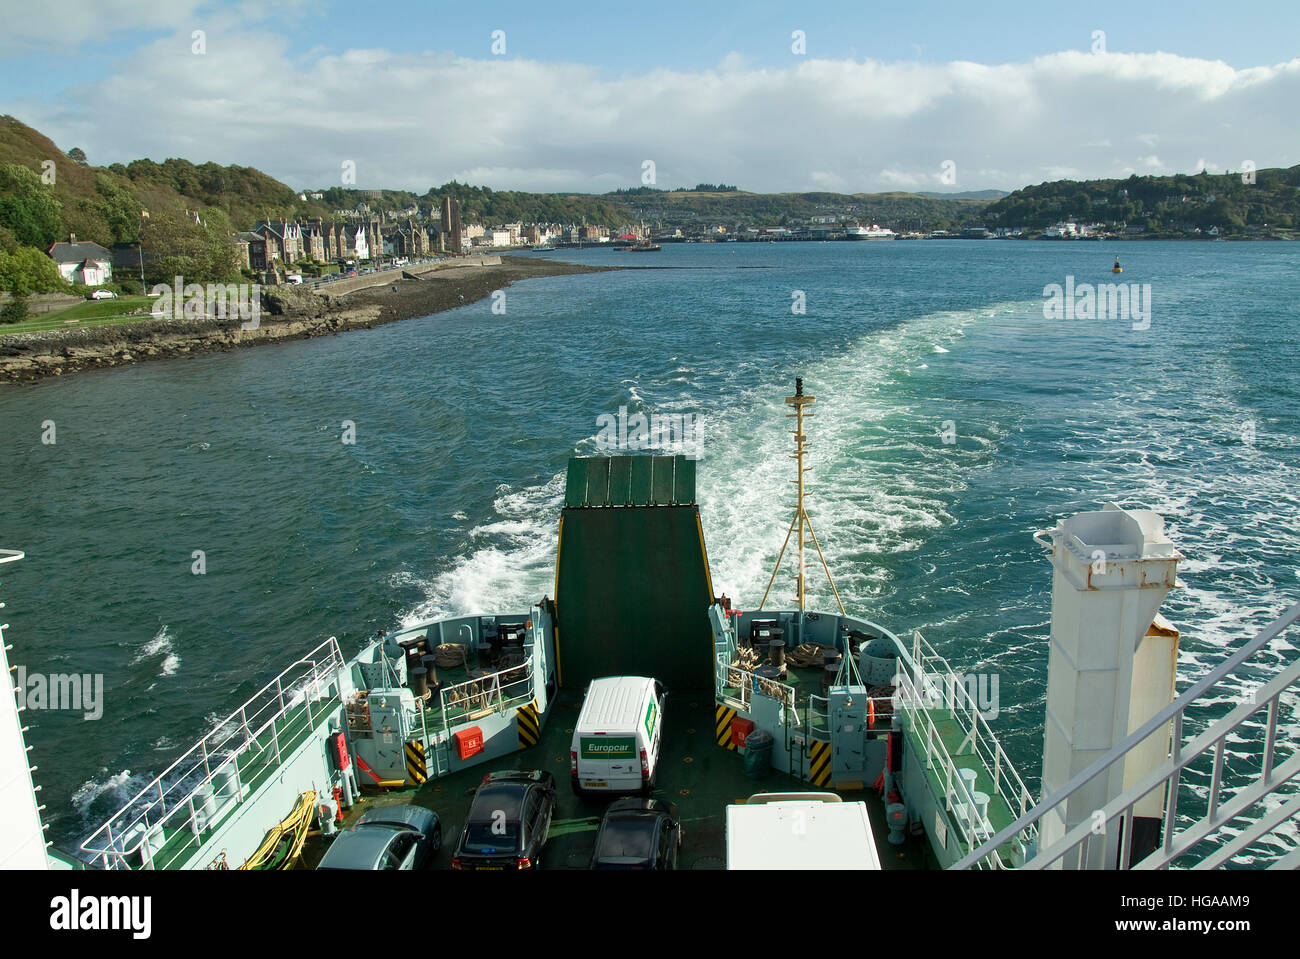 View of Oban from Cal-Mac ferry Lord of the Isles. - Stock Image